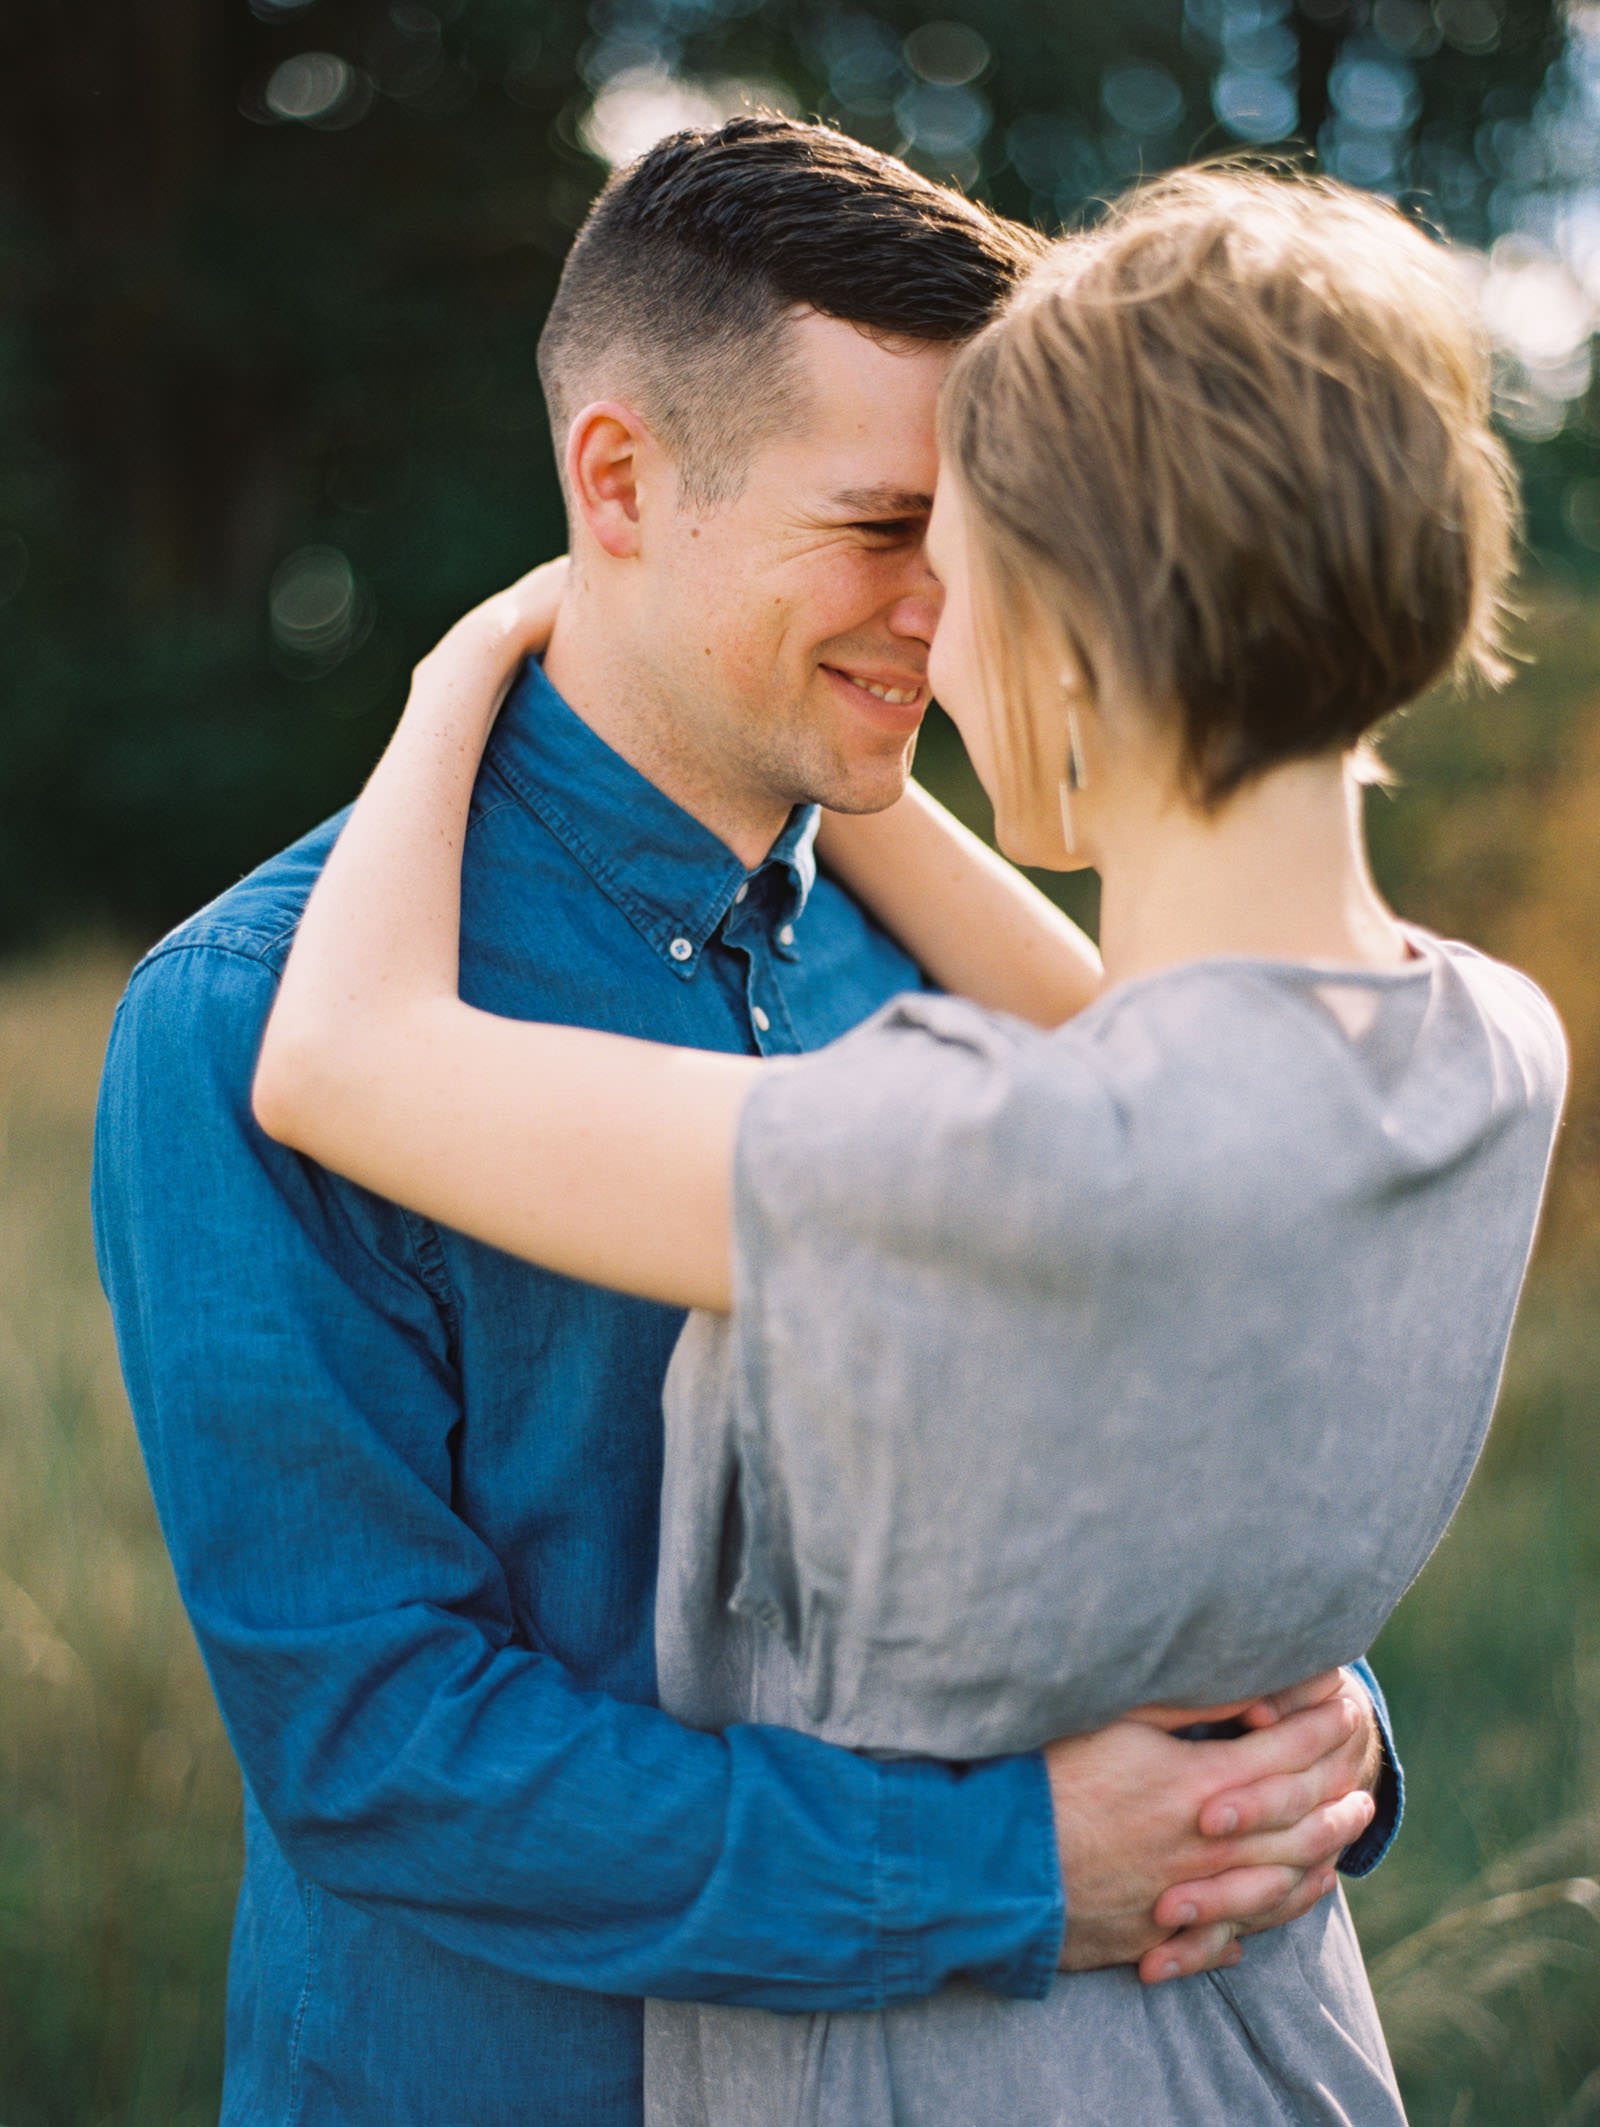 Snuggling close at a discovery park engagement session captured by Seattle FIlm Wedding Photographer Anna Peters